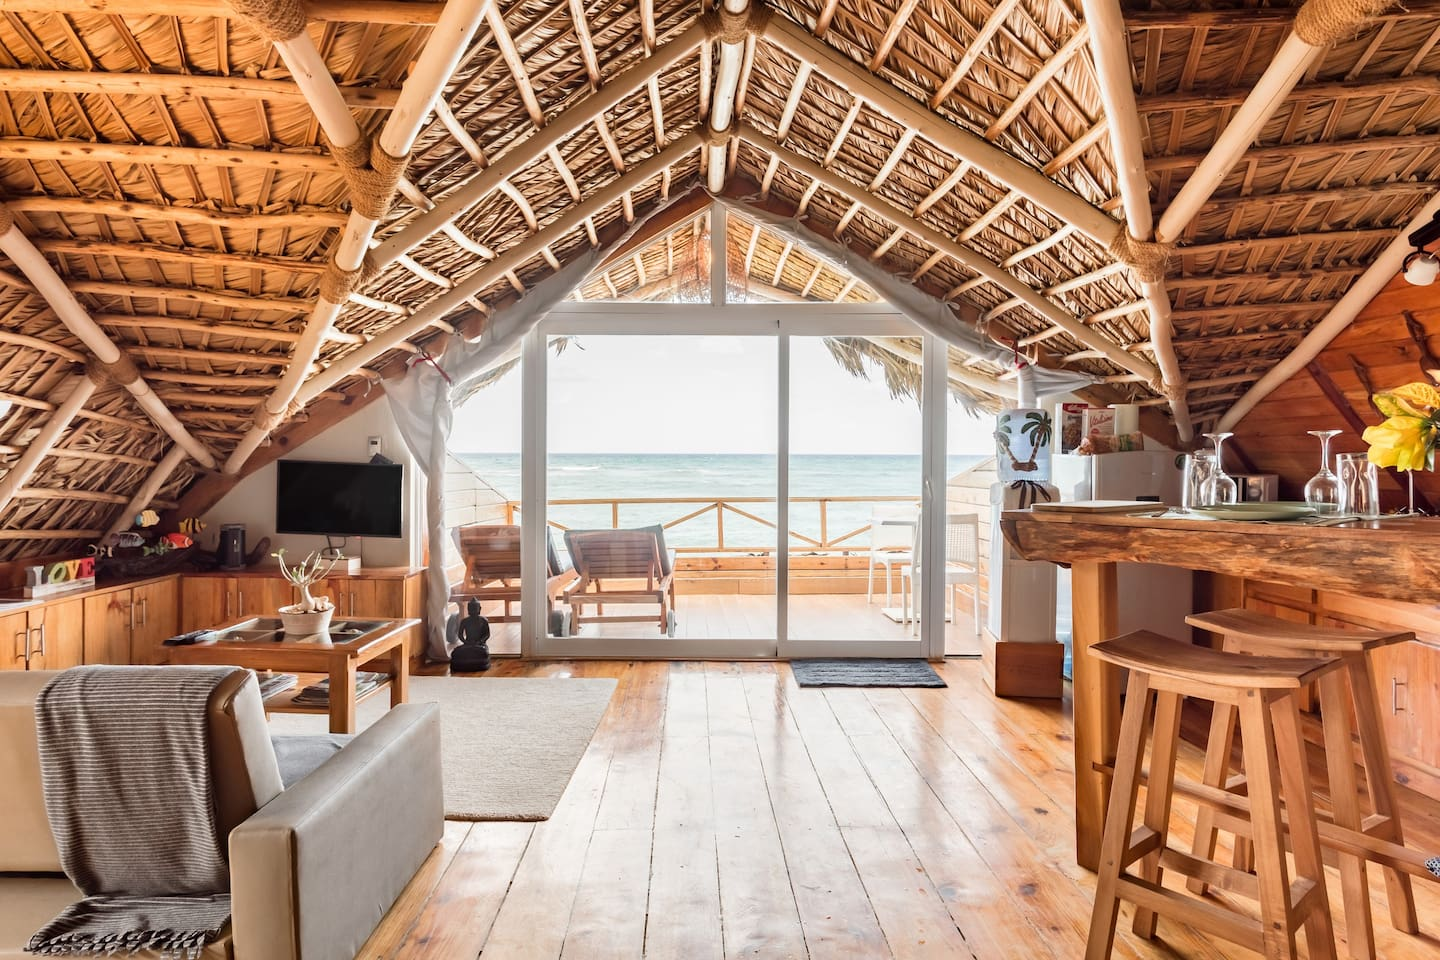 Image of Airbnb rental in Punta Cana, Dominican Republic